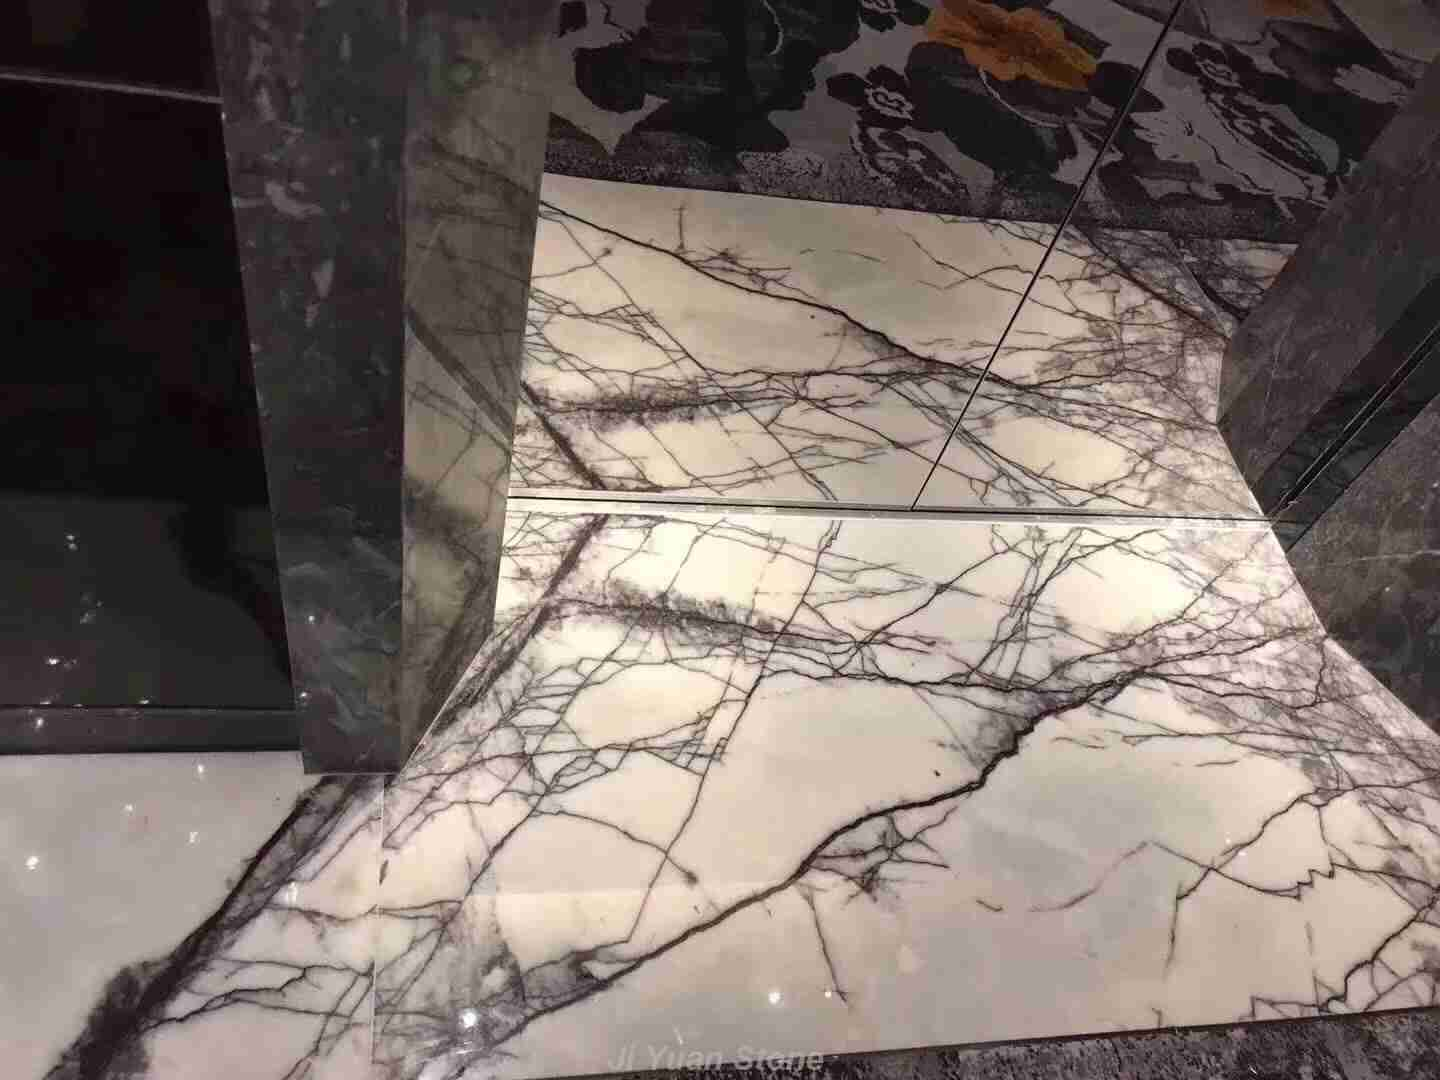 marble company in sharjah,afyon marble,afyon white marble turkey,marble factory in dubai,marble vendors,acqua bianco marble,marble skirting designs,verde antigua marble